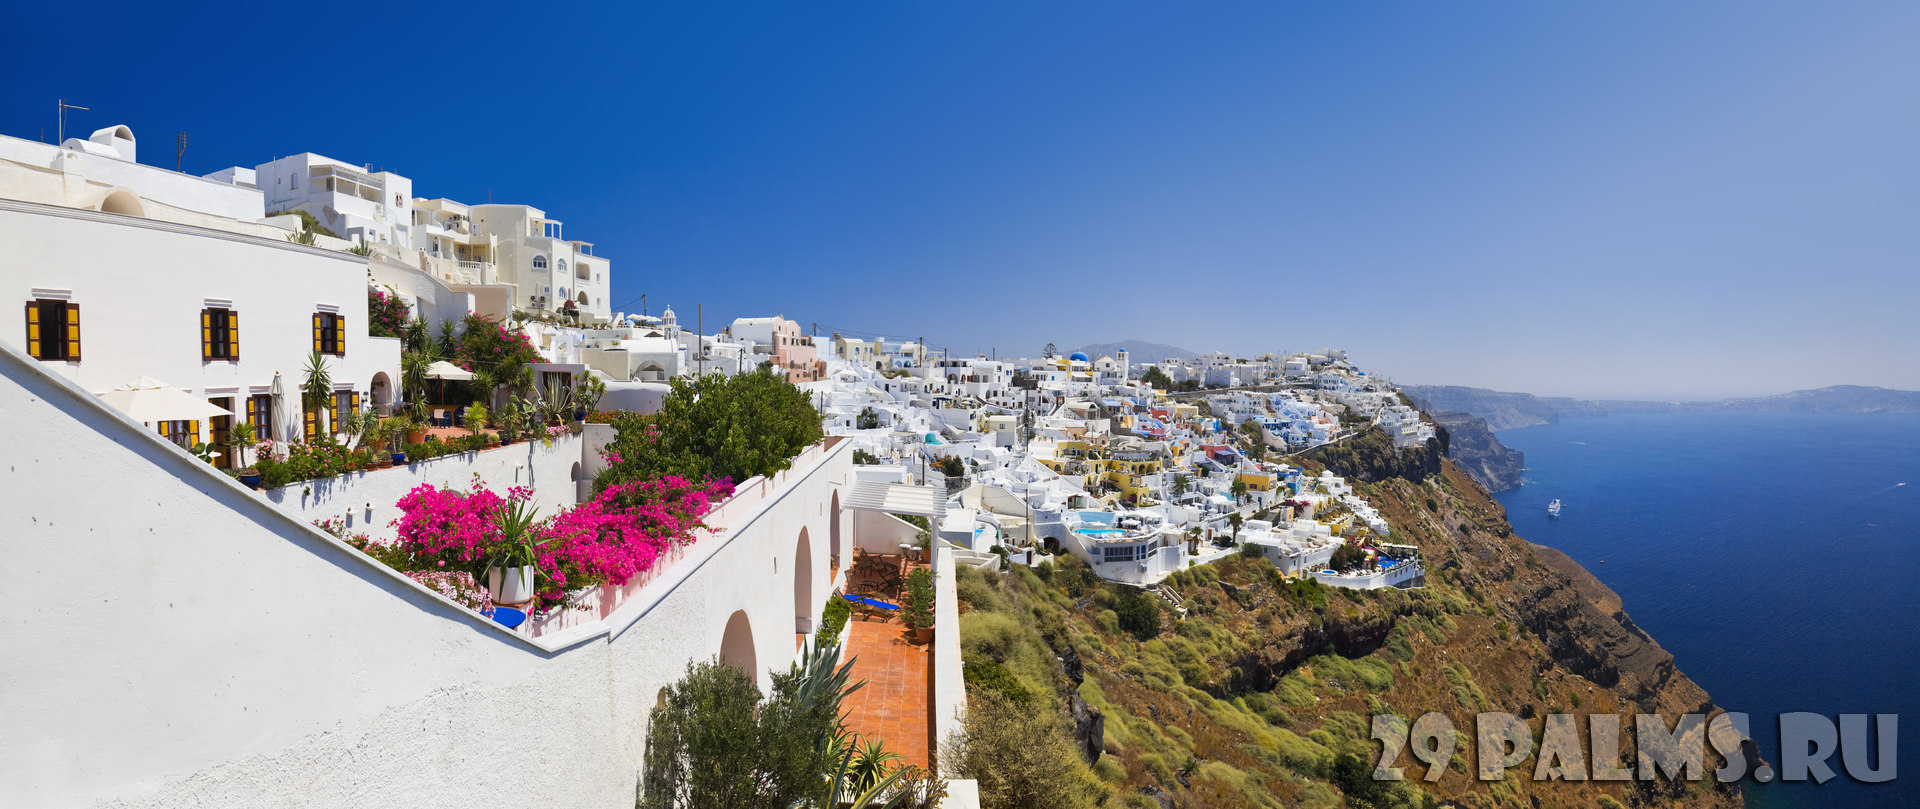 Клуб путешествий Павла Аксенова. Греция. Остров Санторини. Santorini View - Greece. Фото Violin - Depositphotos